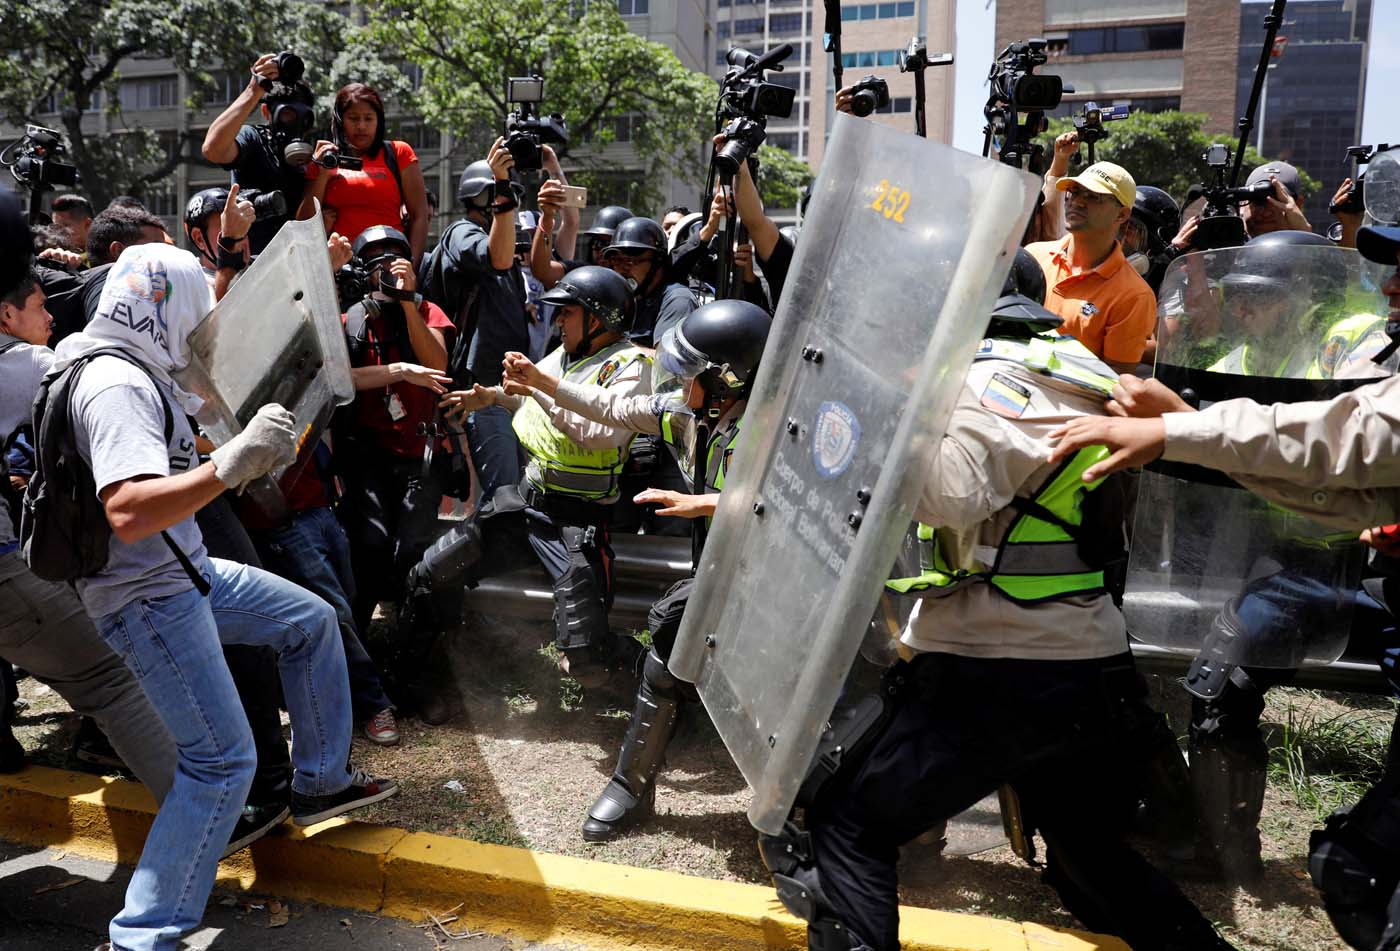 Demonstrators clash with security forces during an opposition rally in Caracas, Venezuela April 4, 2017. REUTERS/Carlos Garcia Rawlins